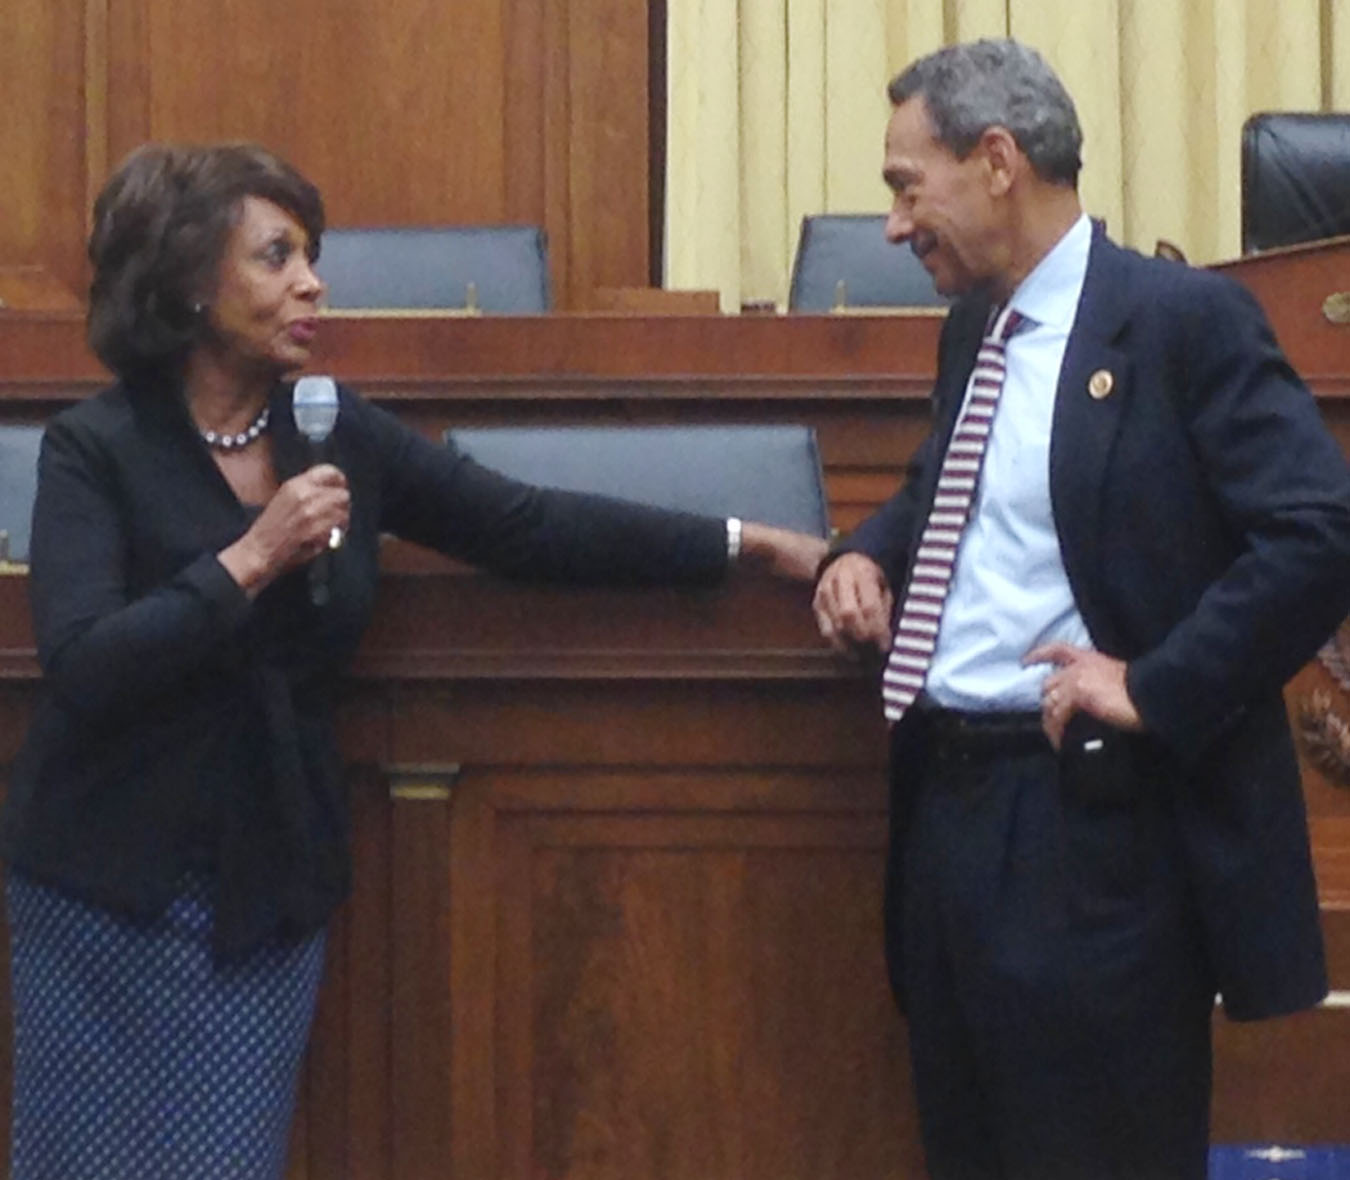 Waters with current FHFA Chair Mel Watt.